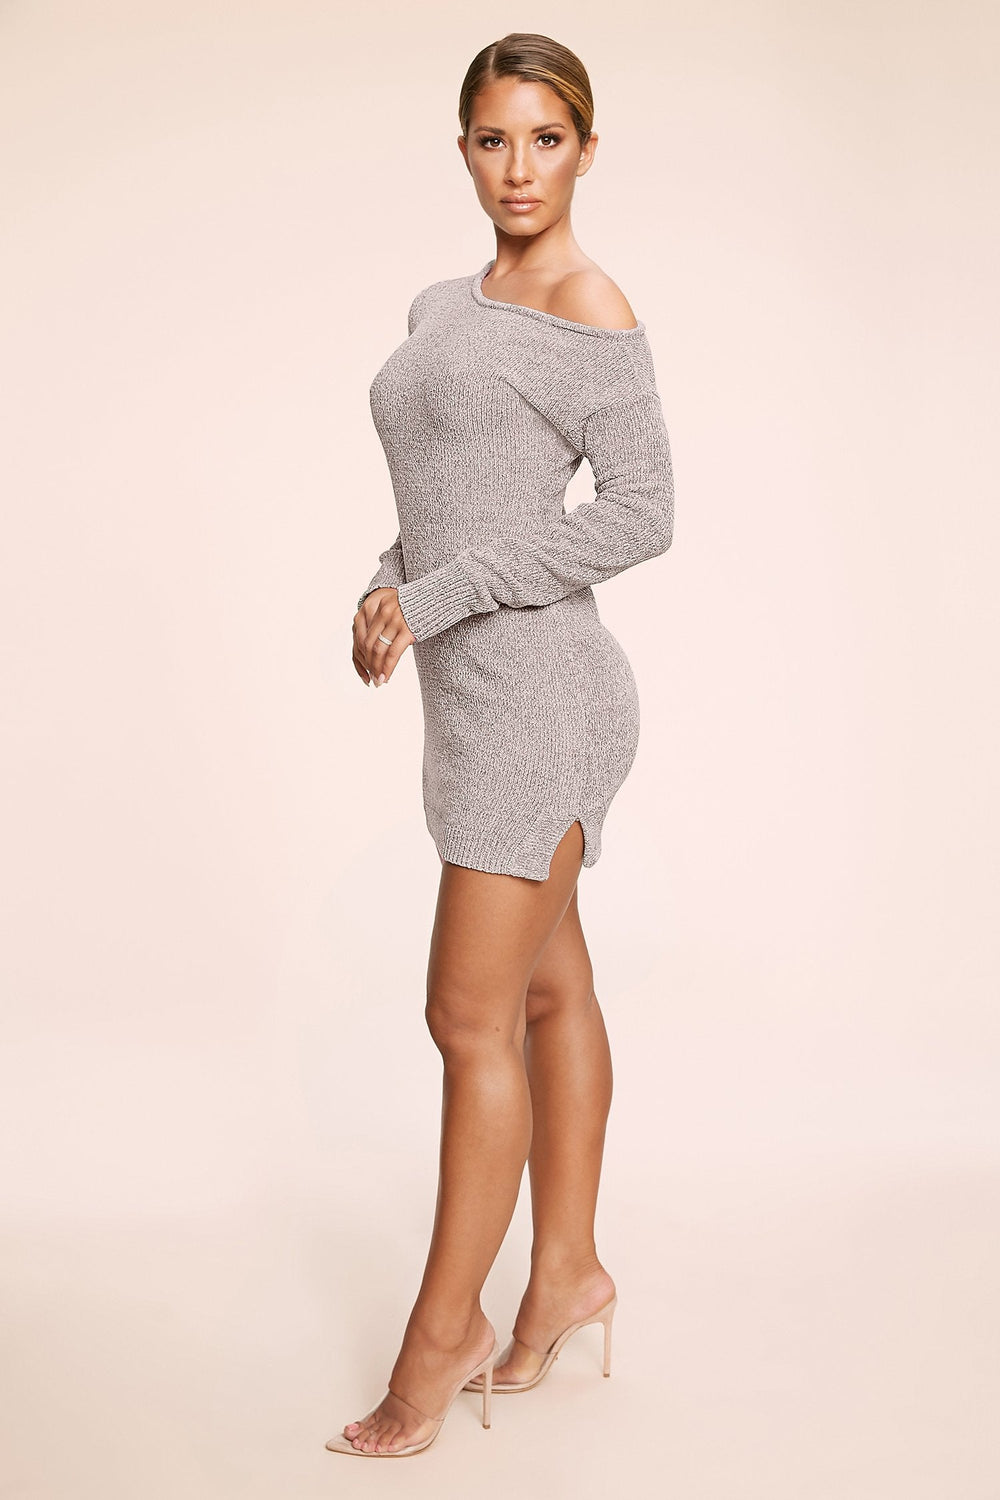 Alegra Chenille Off The Shoulder Dress - Grey - MESHKI ?id=11779859578955